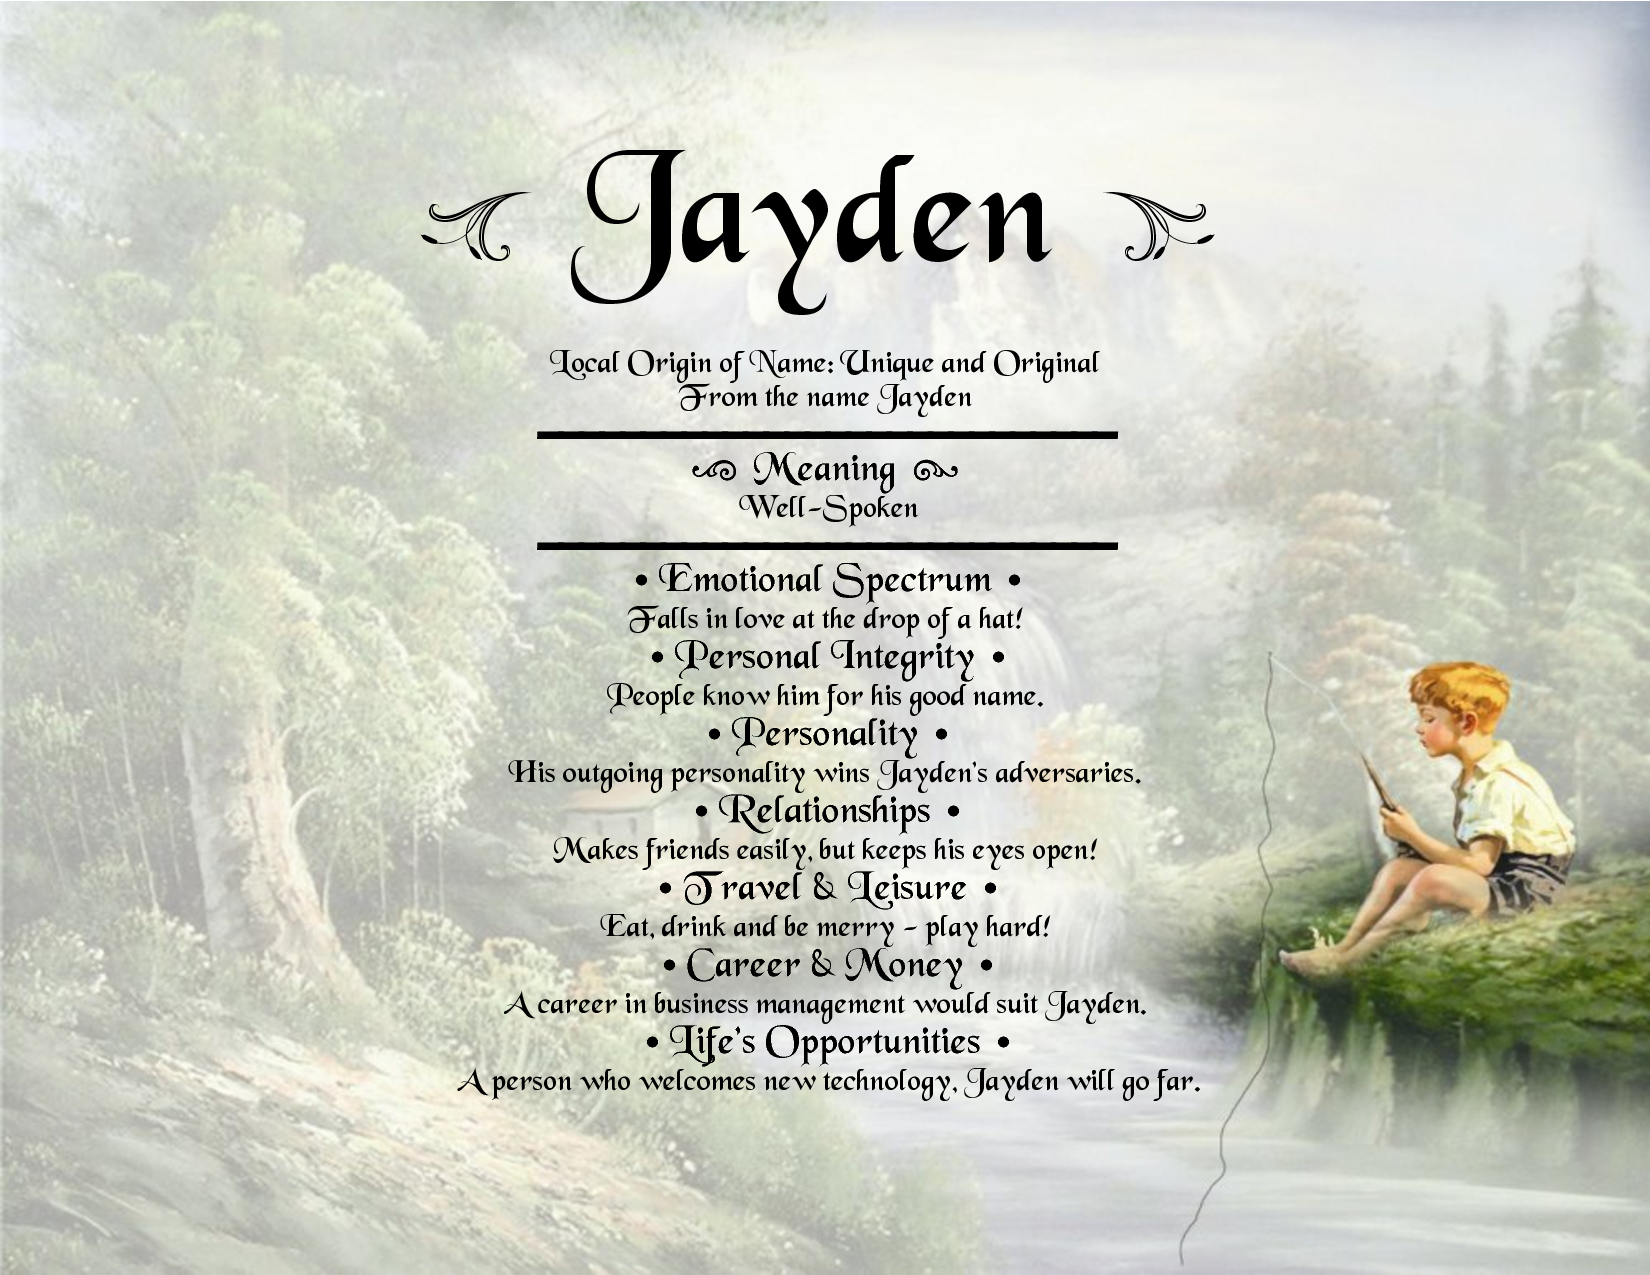 Jayden-name-meaning | For the love of grandbabies ... - photo#32